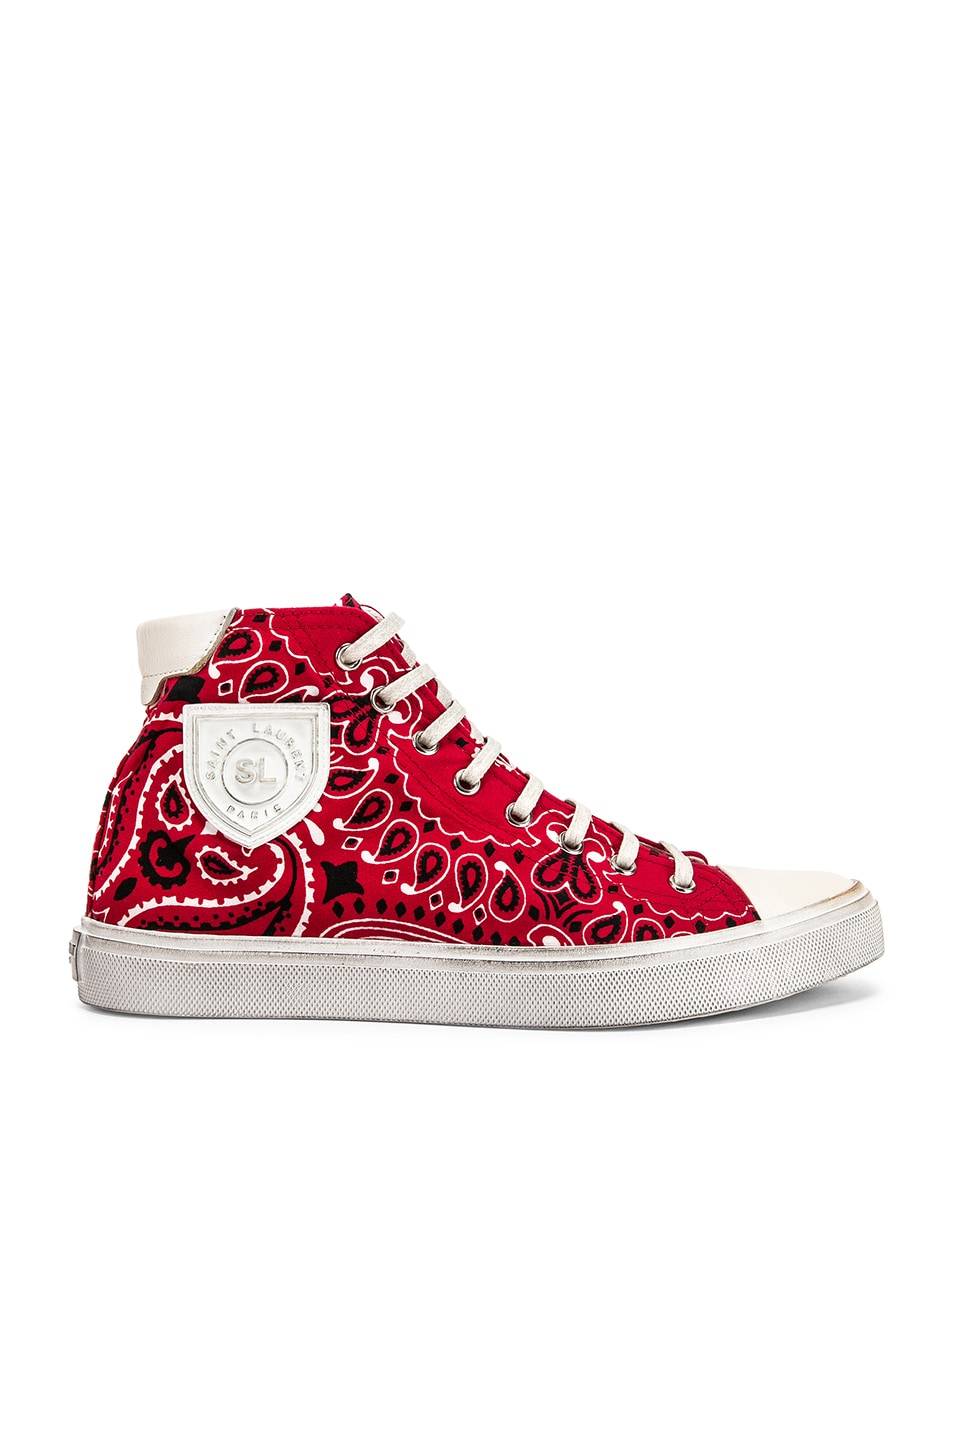 Image 1 of Saint Laurent High Top Bedford Sneakers in Red & White